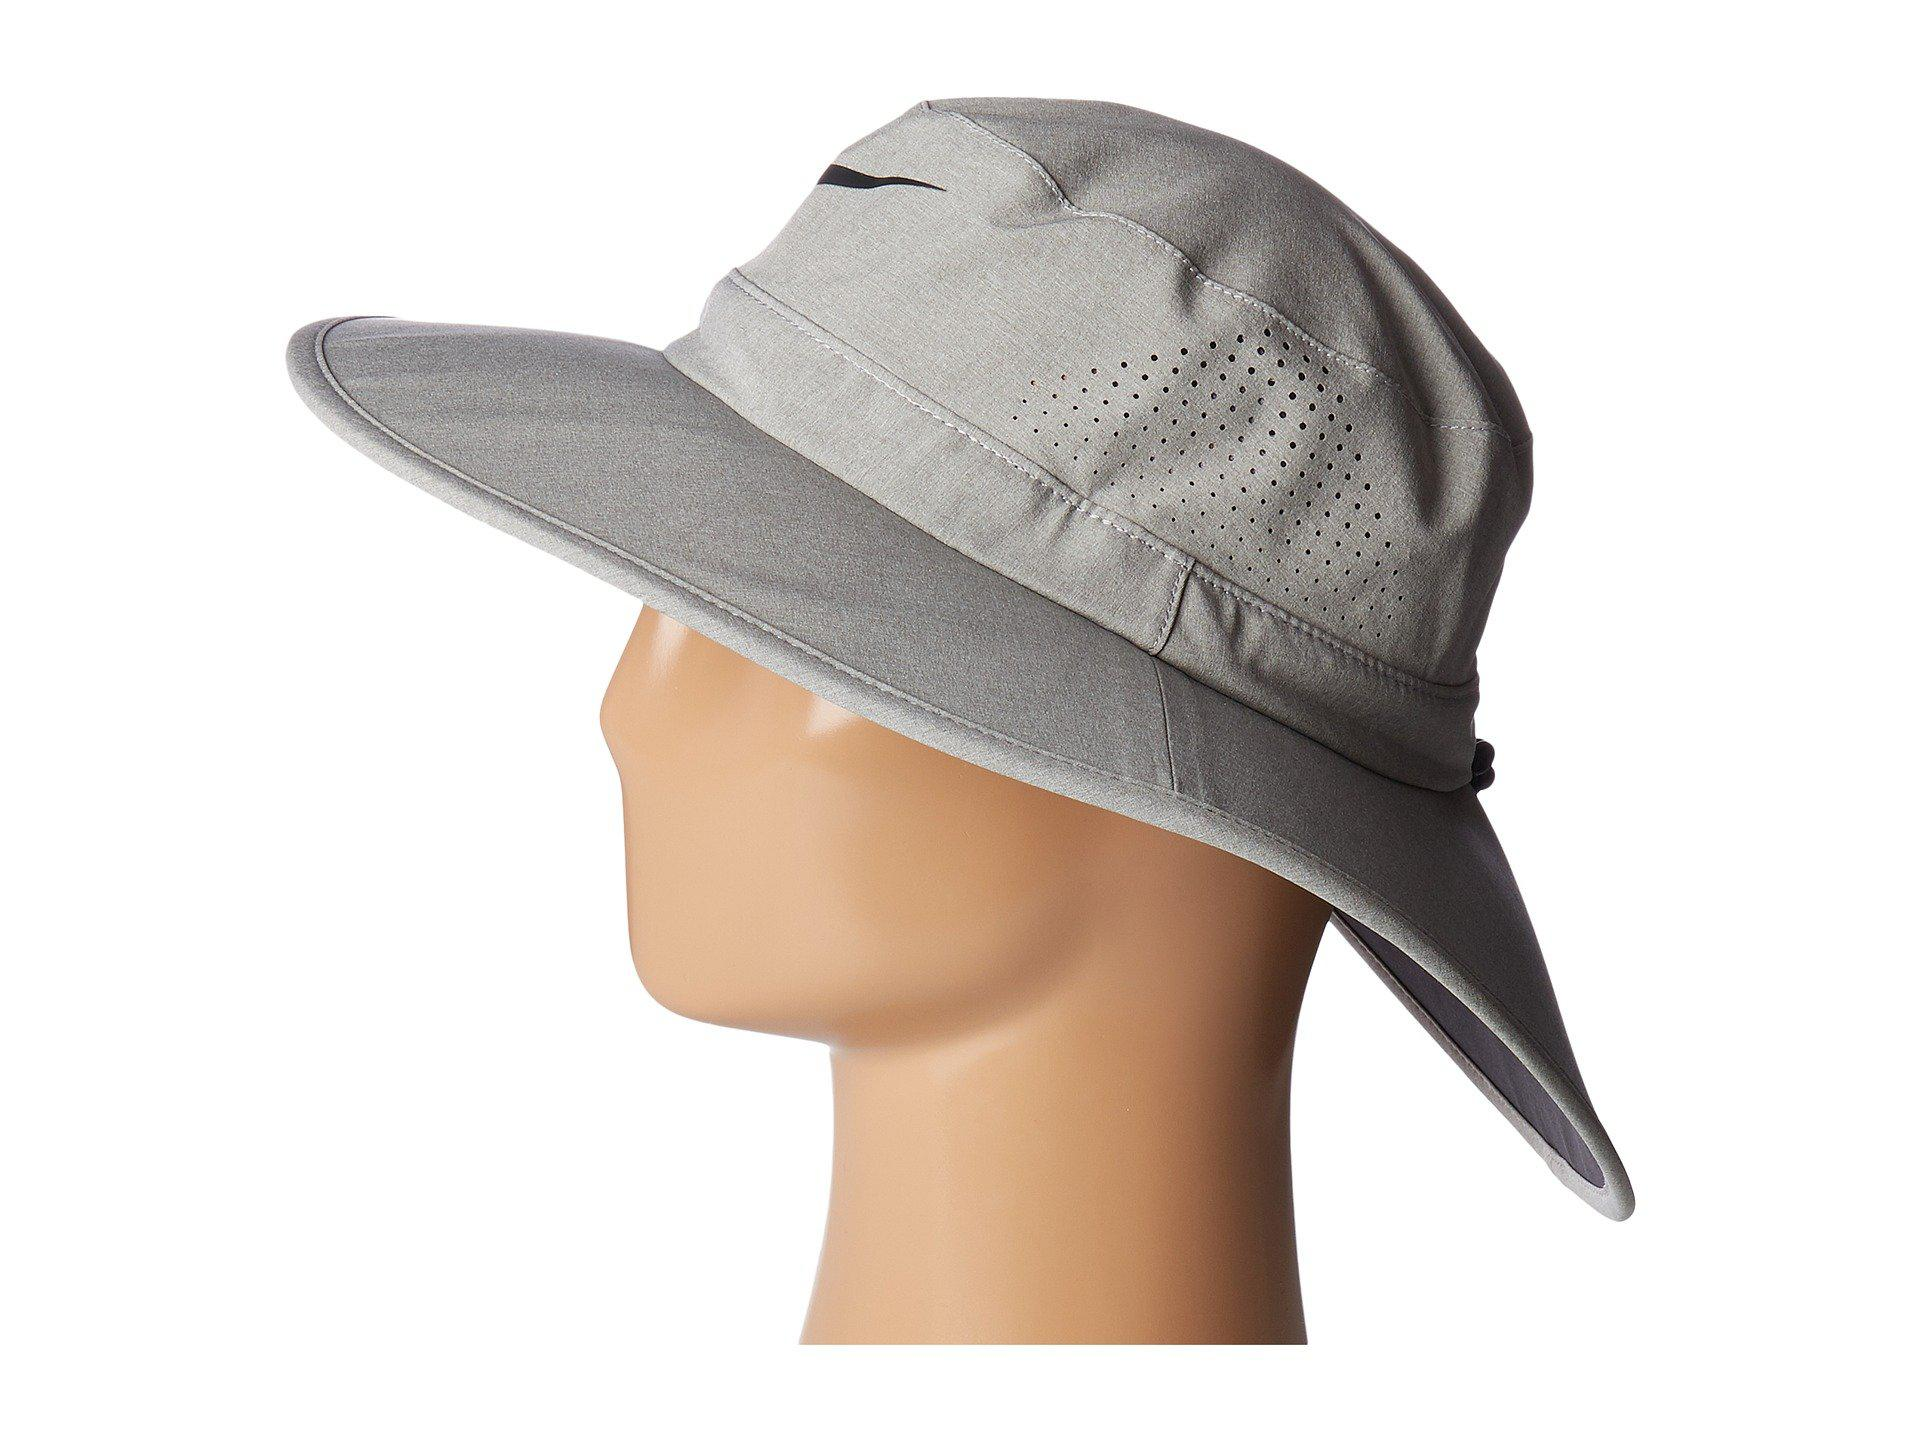 Lyst - Nike Sun Protect Cap 2.0 (black wolf Grey anthracite white ... 63ec42315c4